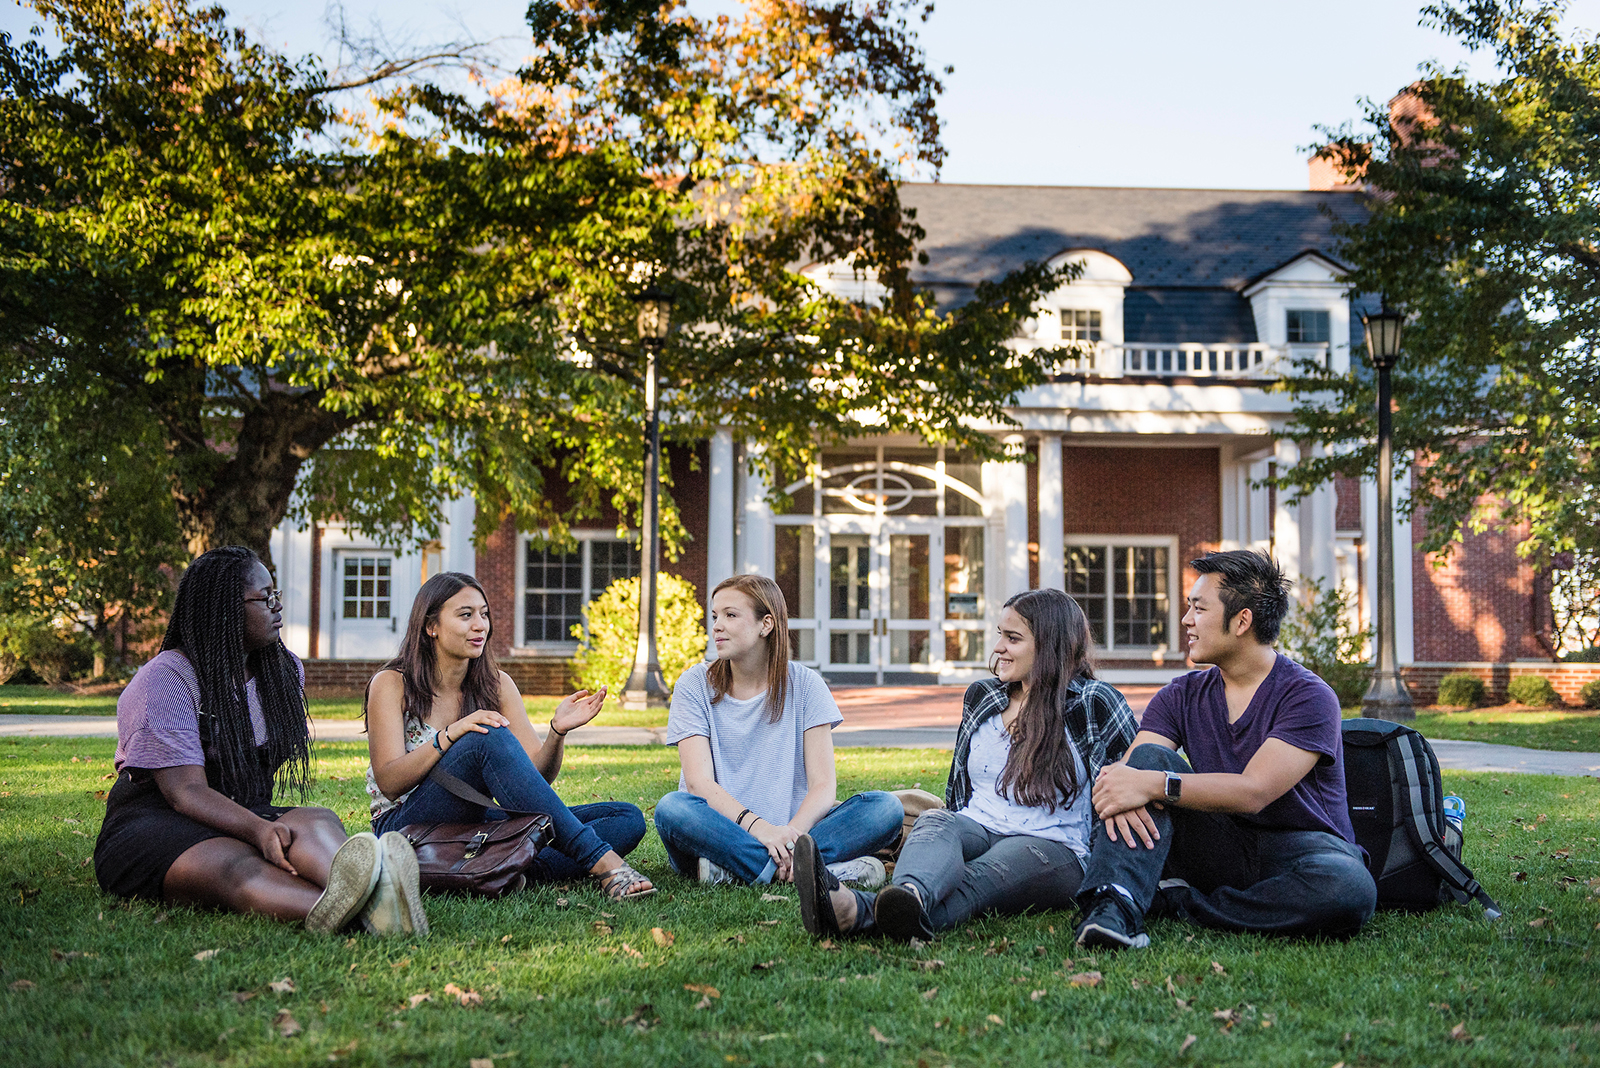 Undergraduate students pose for photos in front of Bendetson Hall on the Medford/Somerville Campus on October 12, 2015. (Alonso Nichols/Tufts University)